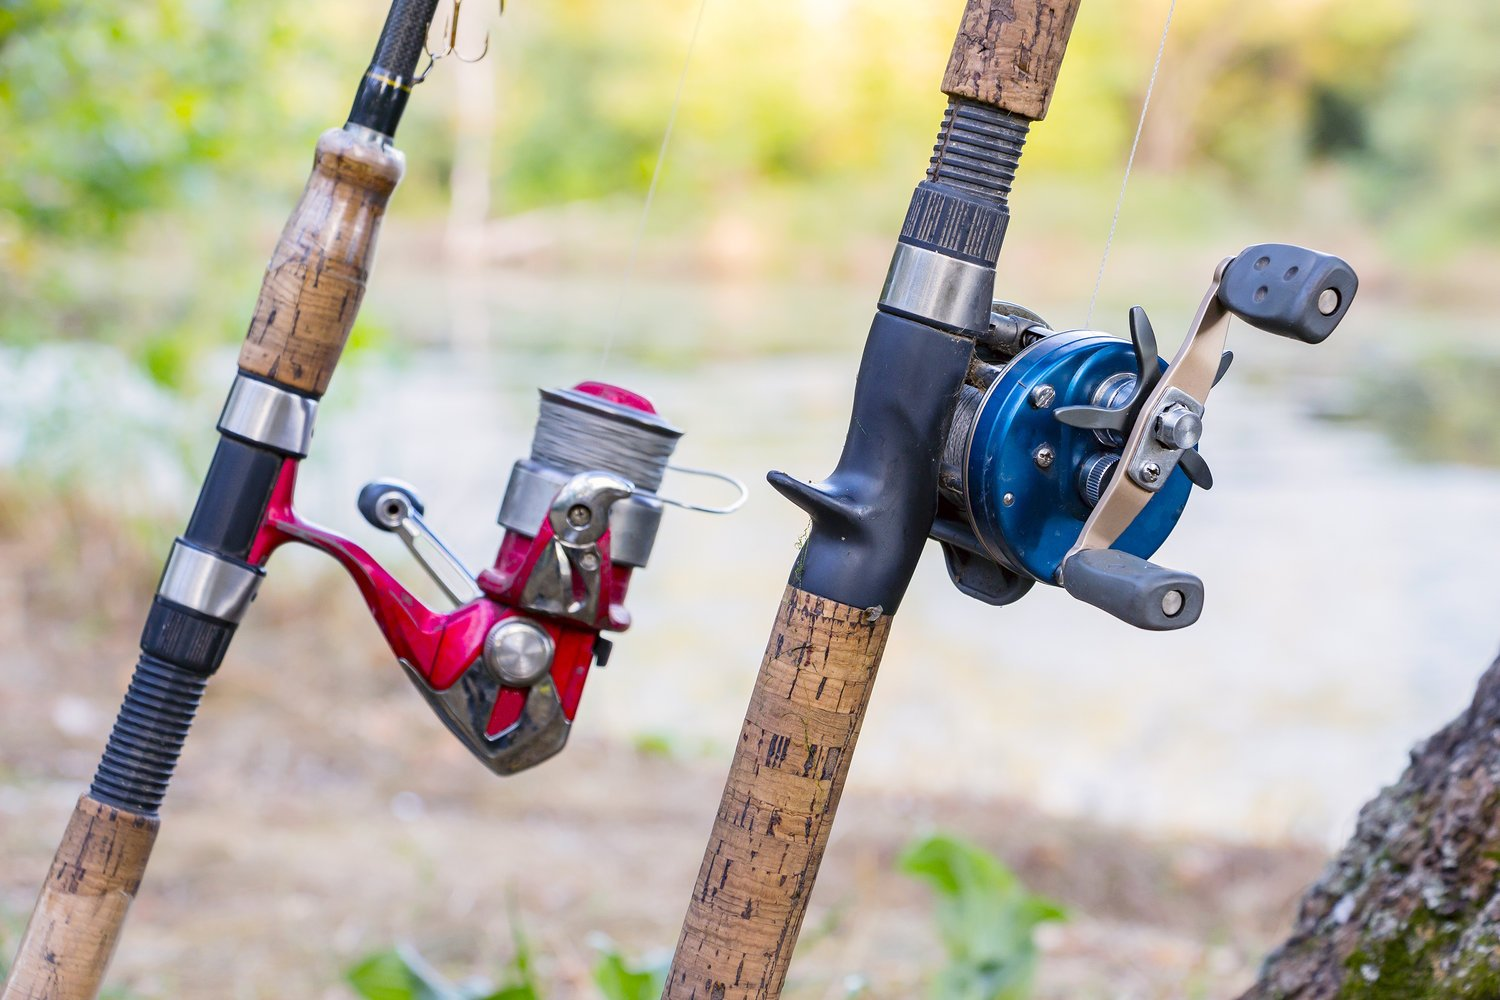 two most common types of fishing reels on a couple of fishing rods: a spinning reel on the left, and a baitcasting reel on the right